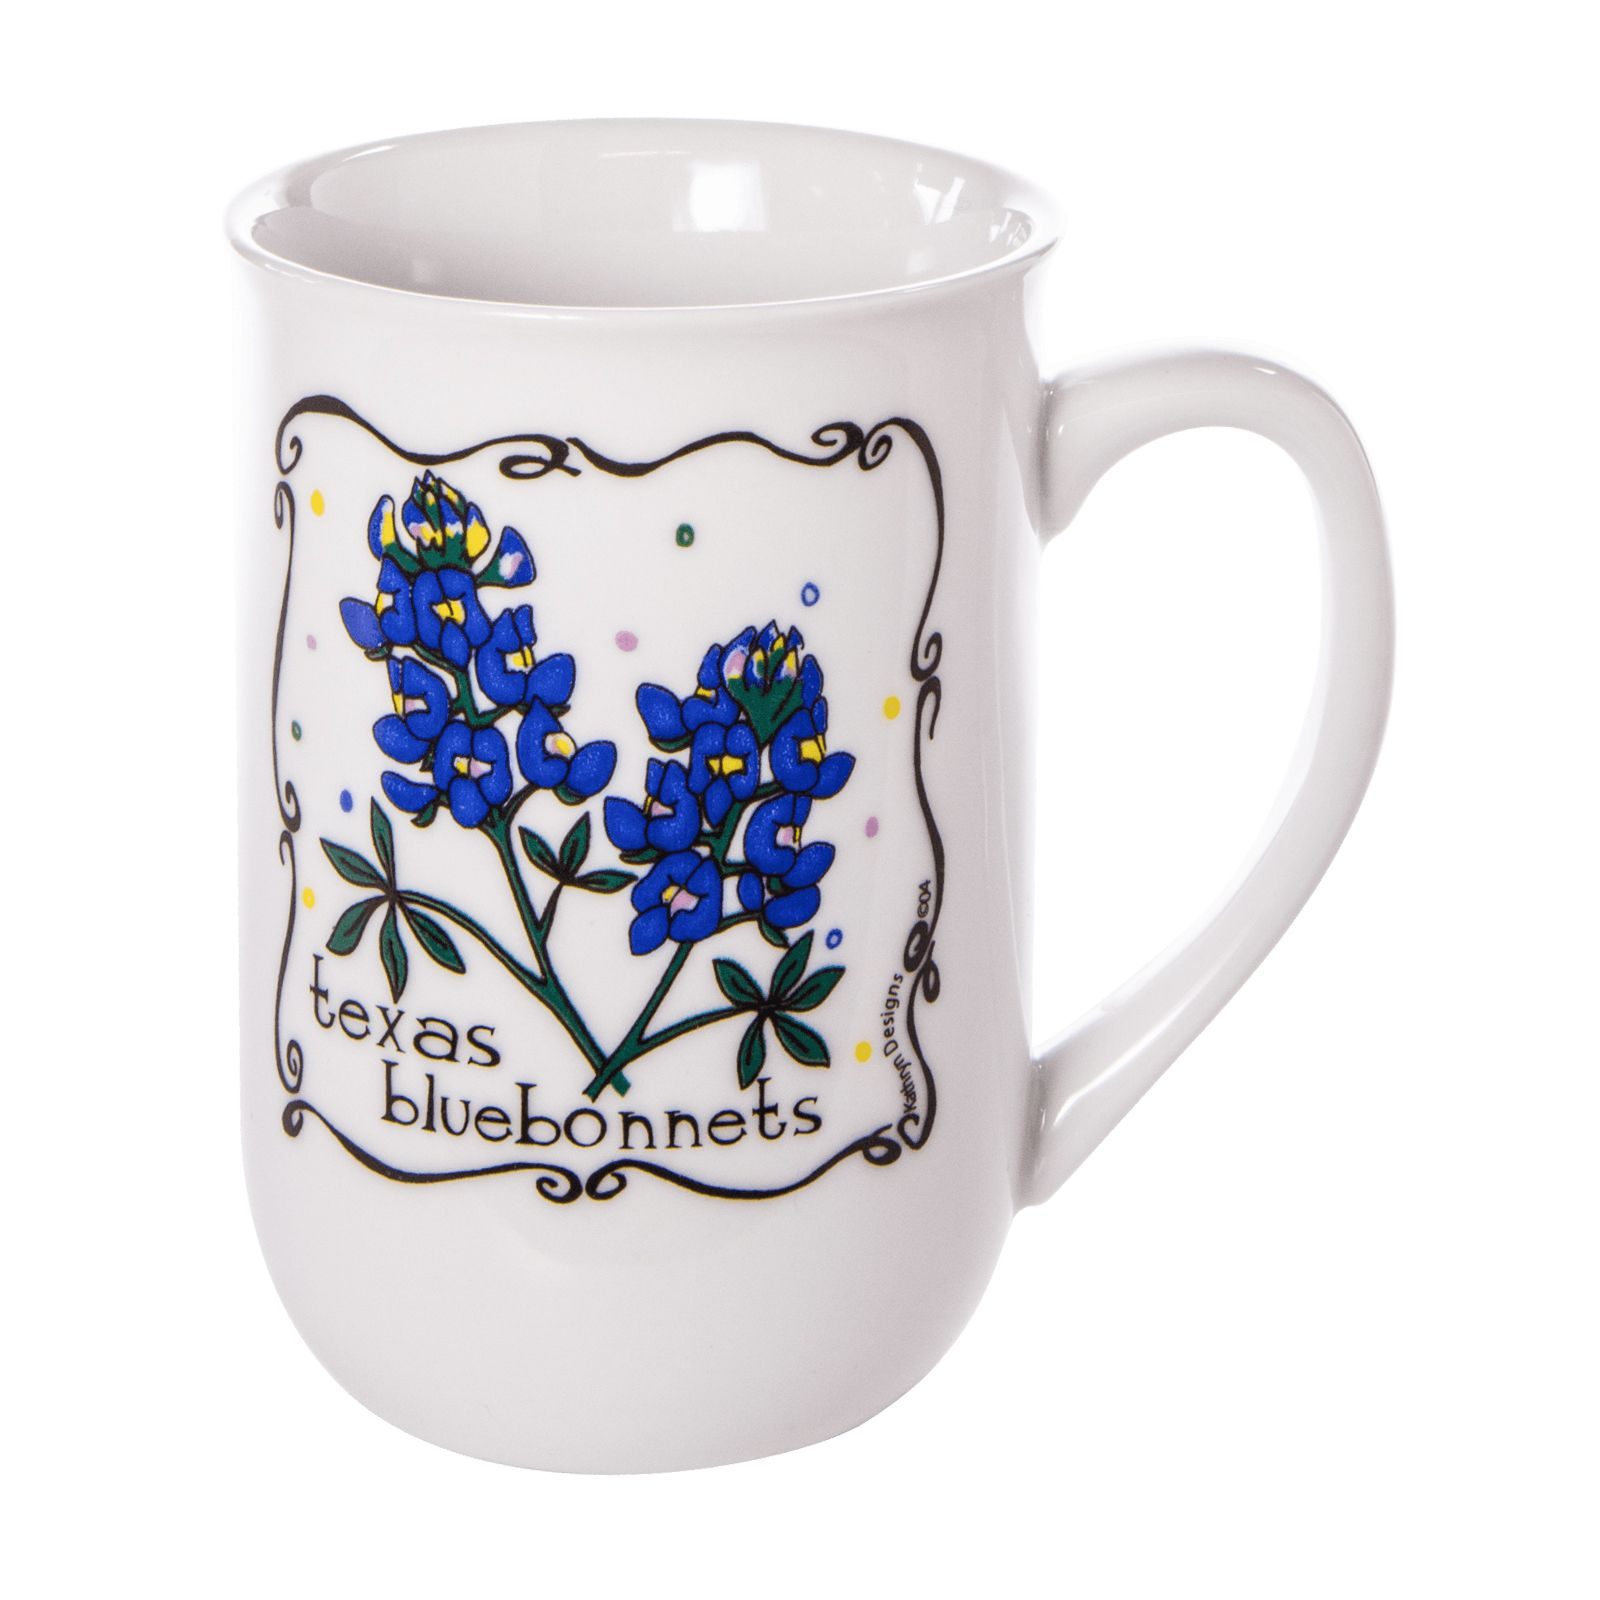 Texas Bluebonnet Ceramic Mug